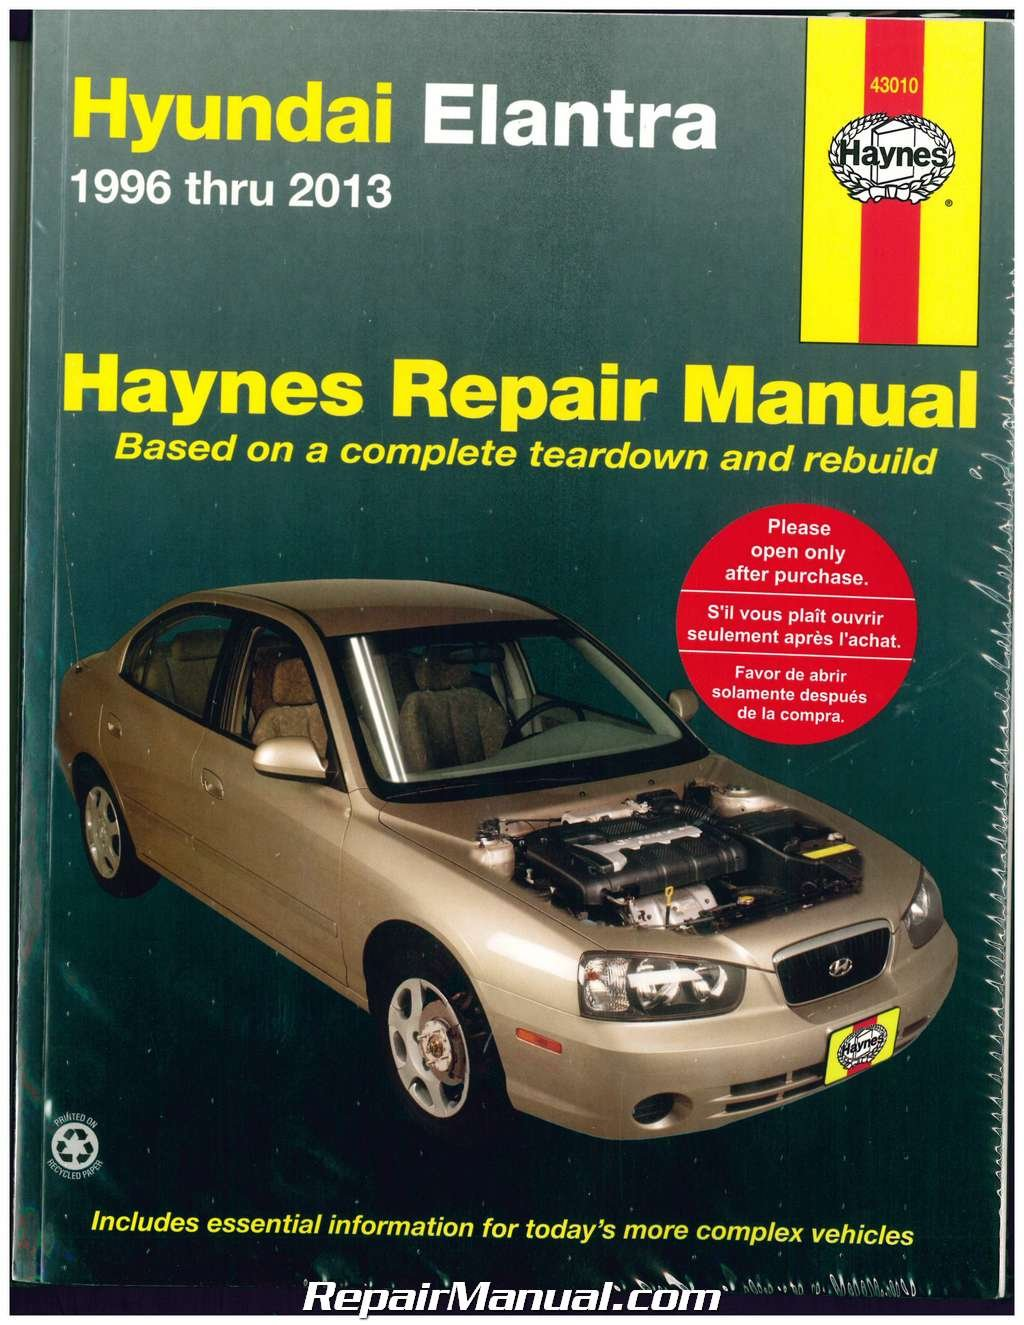 Amazon.com: H43010 Haynes Hyundai Elantra 1996-2013 Auto Repair Manual:  Manufacturer: Automotive